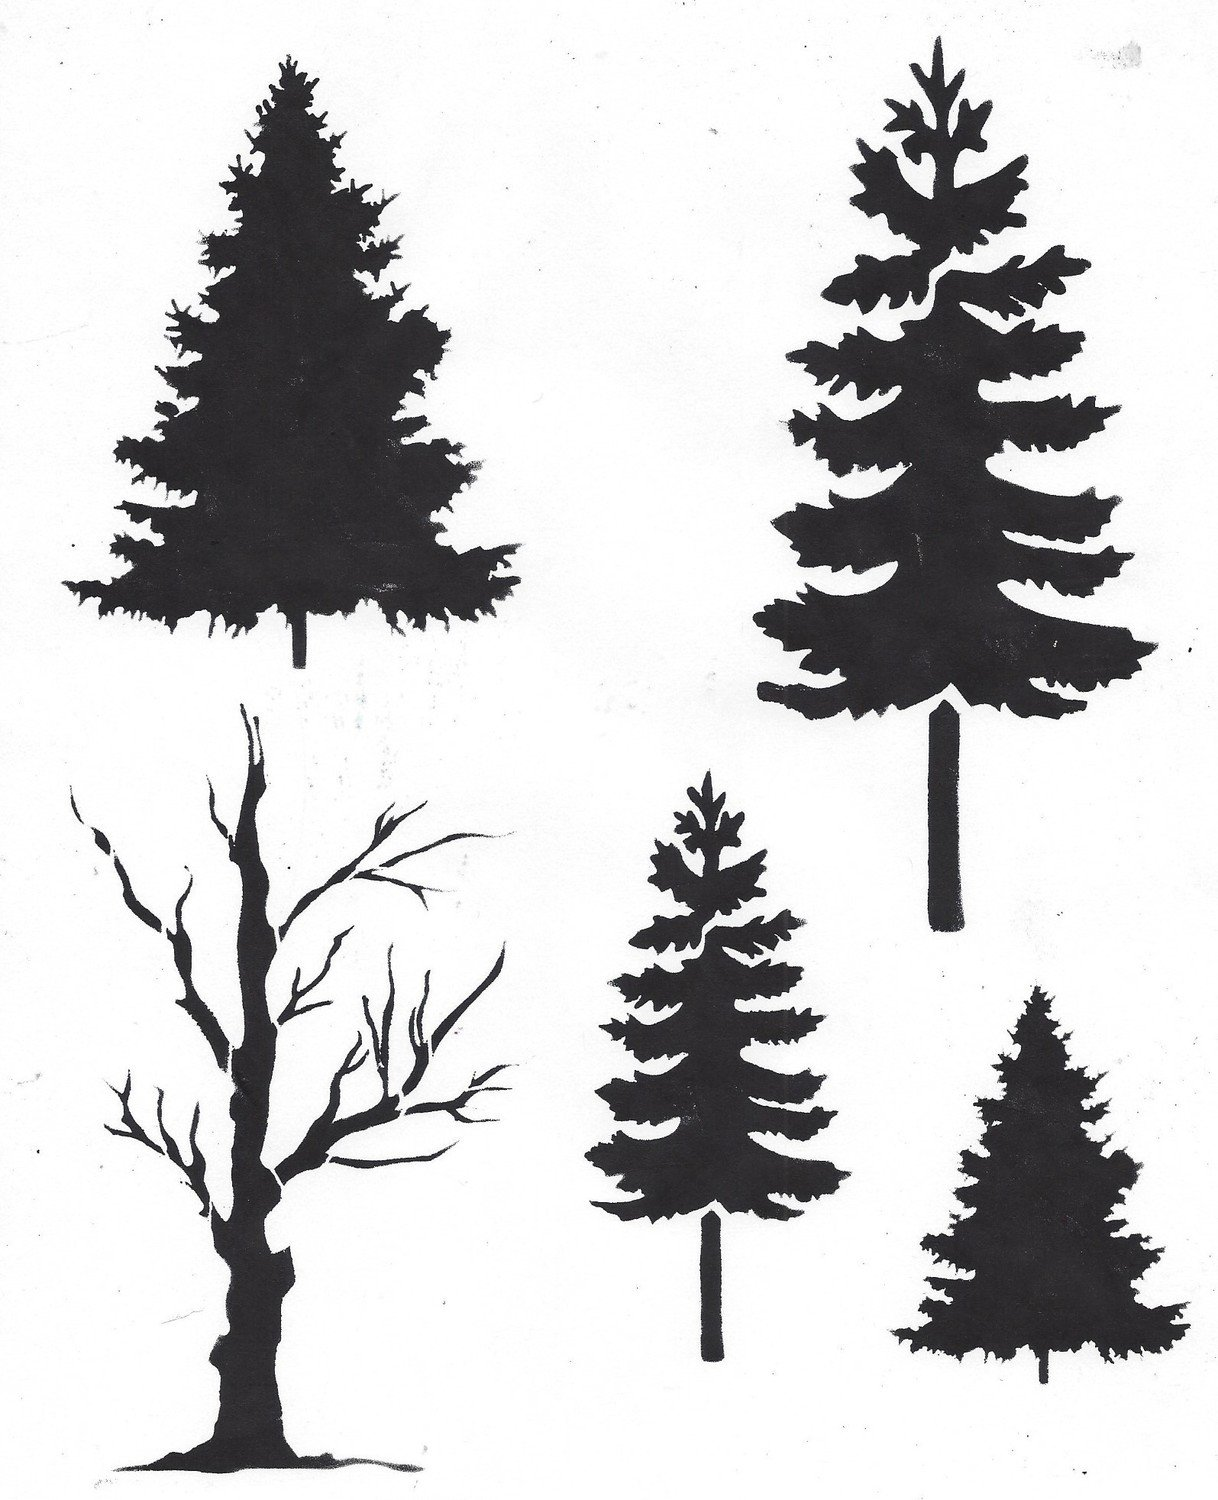 Trees with Masks stencil 12x16